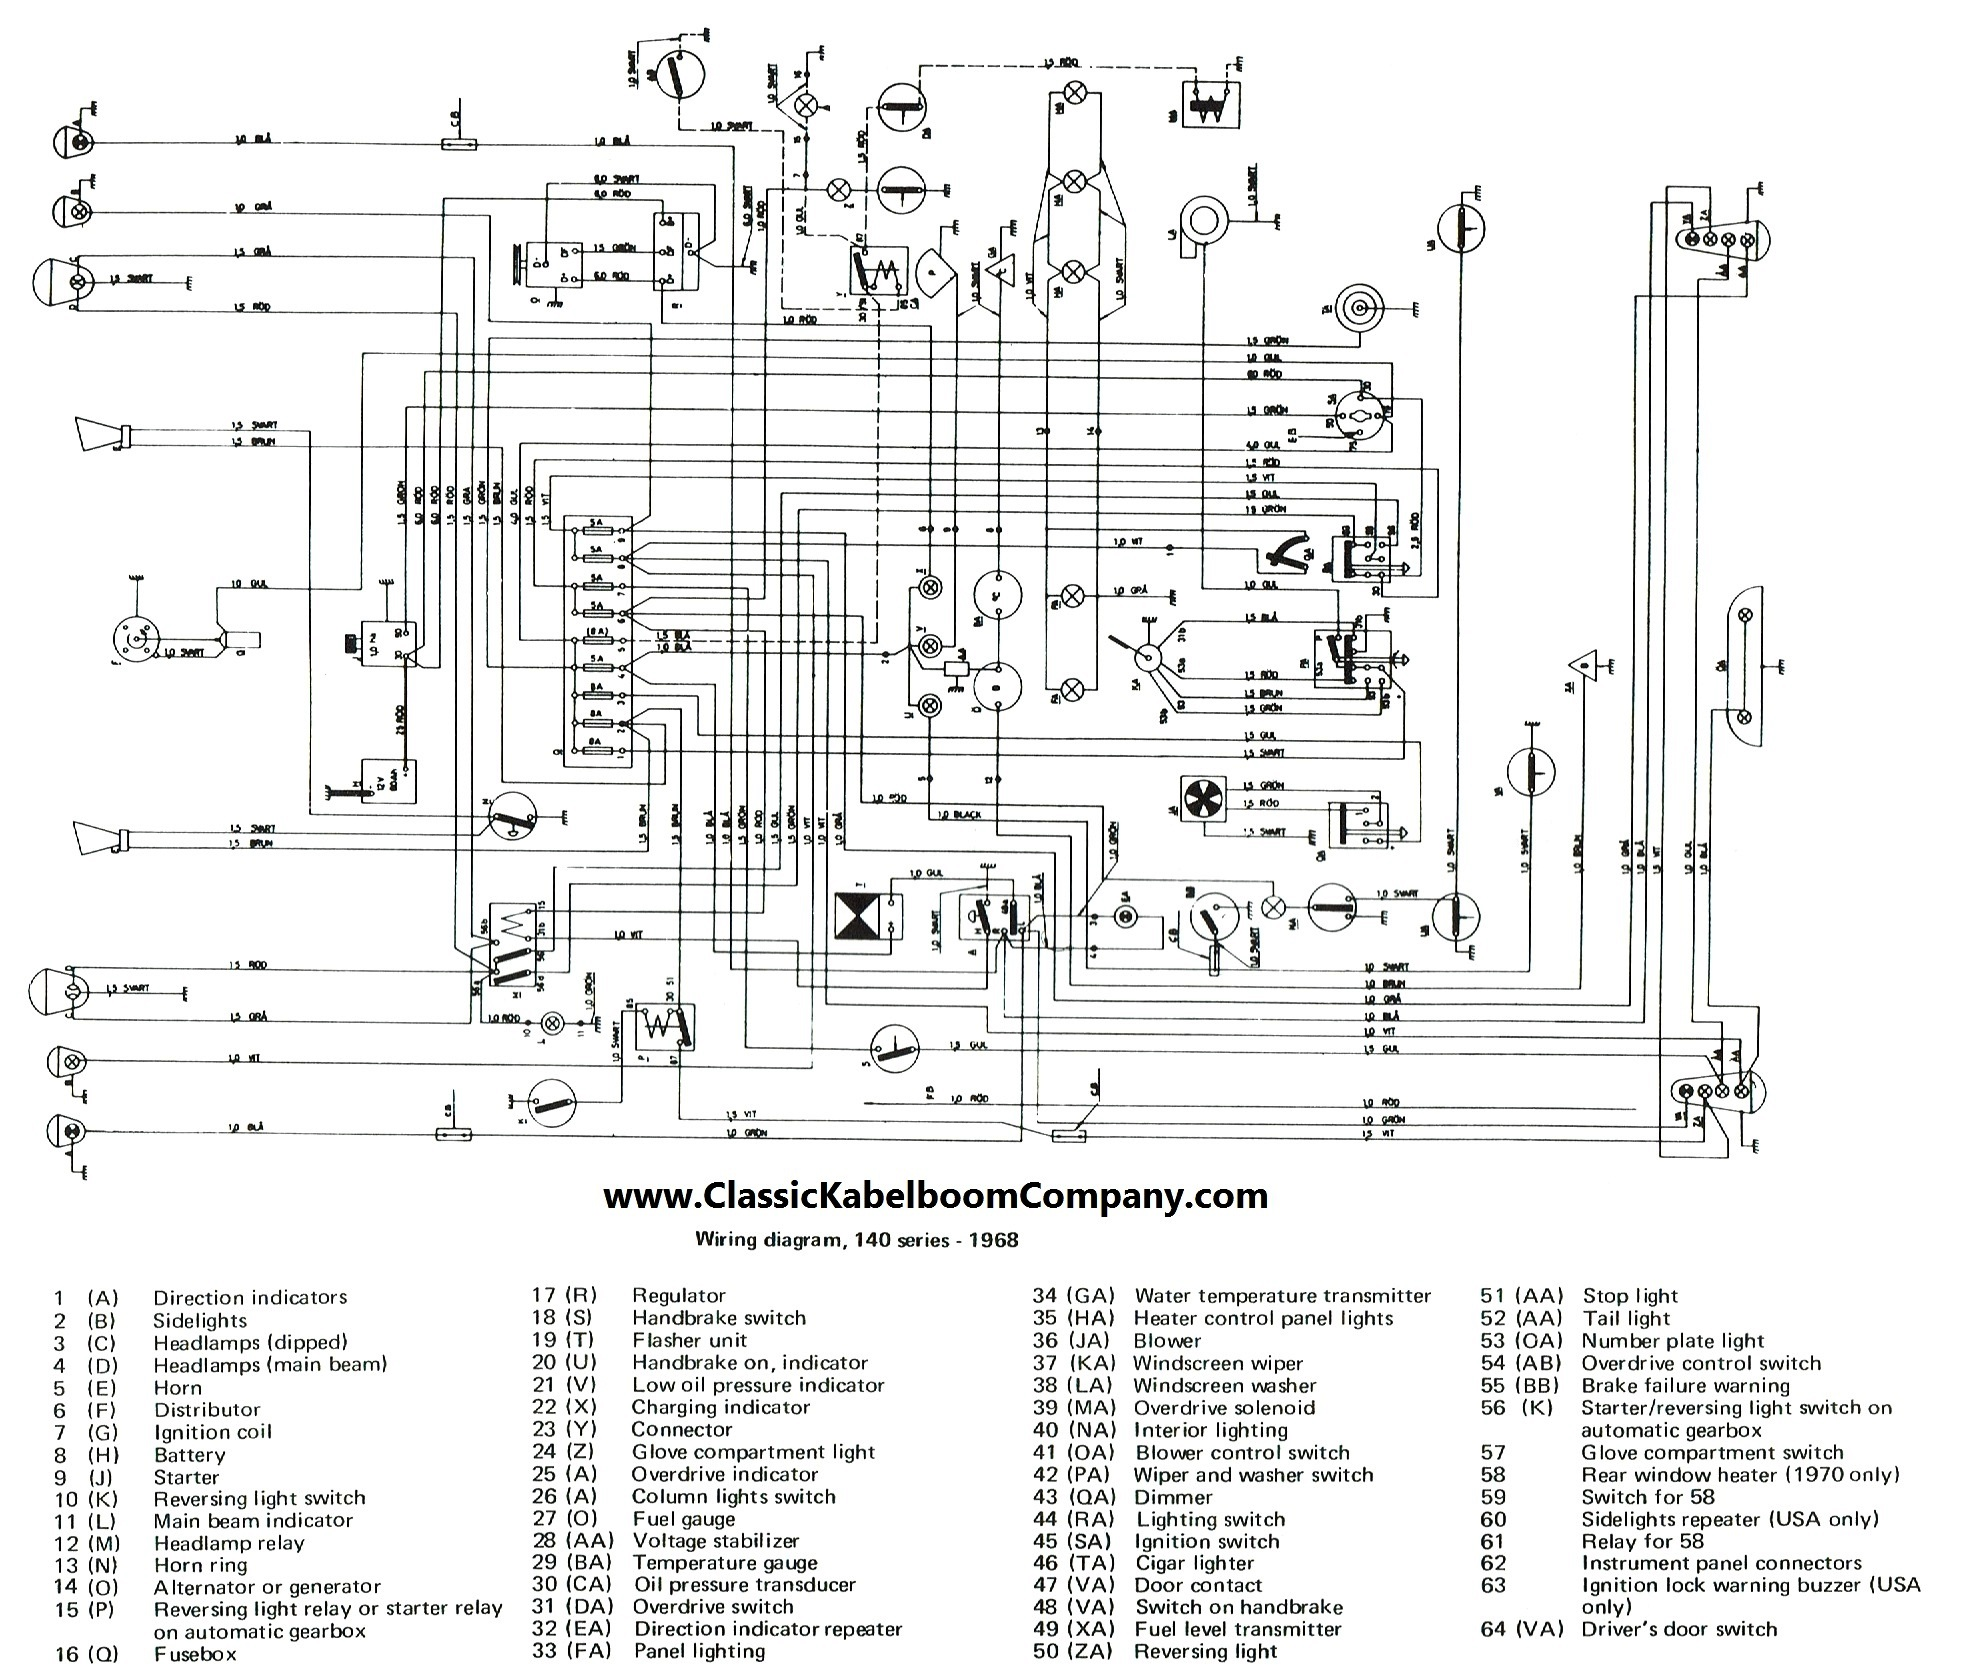 vol16?cdp=a classic kabelboom company elektrisch bedrading schema volvo volvo 240 instrument cluster wiring diagram at cos-gaming.co